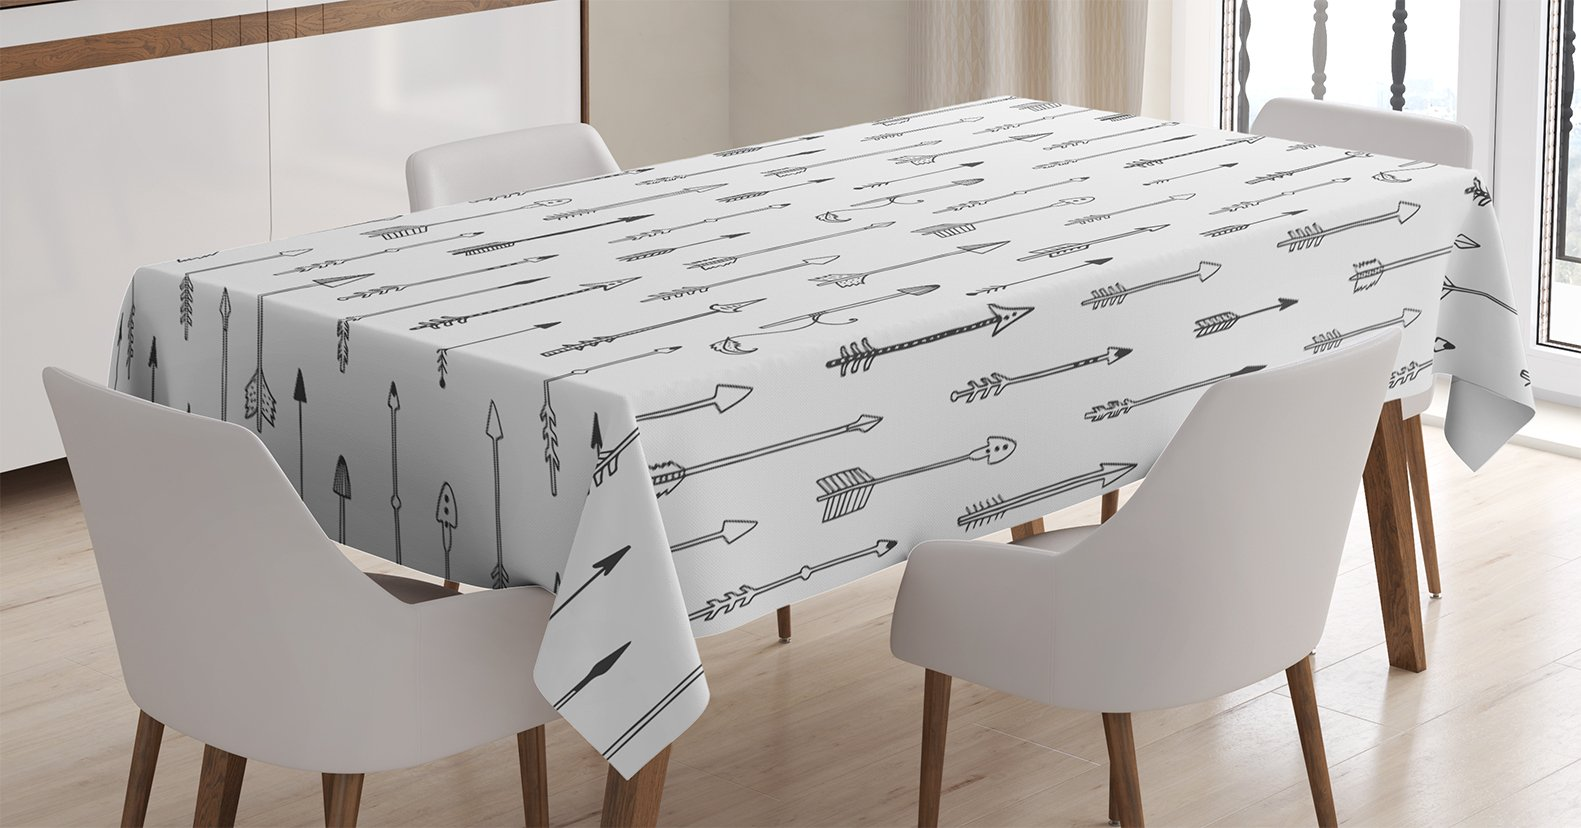 Ambesonne Arrow Tablecloth, Nostalgic Tribal Motifs Contemporary Graphic of Retro Native Arrows Culture, Dining Room Kitchen Rectangular Table Cover, 60 W X 90 L Inches, Charcoal Grey White - 60 INCHES WIDE x 90 INCHES LONG - Highly unique. Versatile. FUN. MACHINE WASHABLE - Cold cycle. Easy to clean. Durable enough for both indoor and outdoor use. MADE FROM - High quality 100% polyester woven silky satin fabric with hand-sewn finished edges - tablecloths, kitchen-dining-room-table-linens, kitchen-dining-room - 71TC RMdb1L -